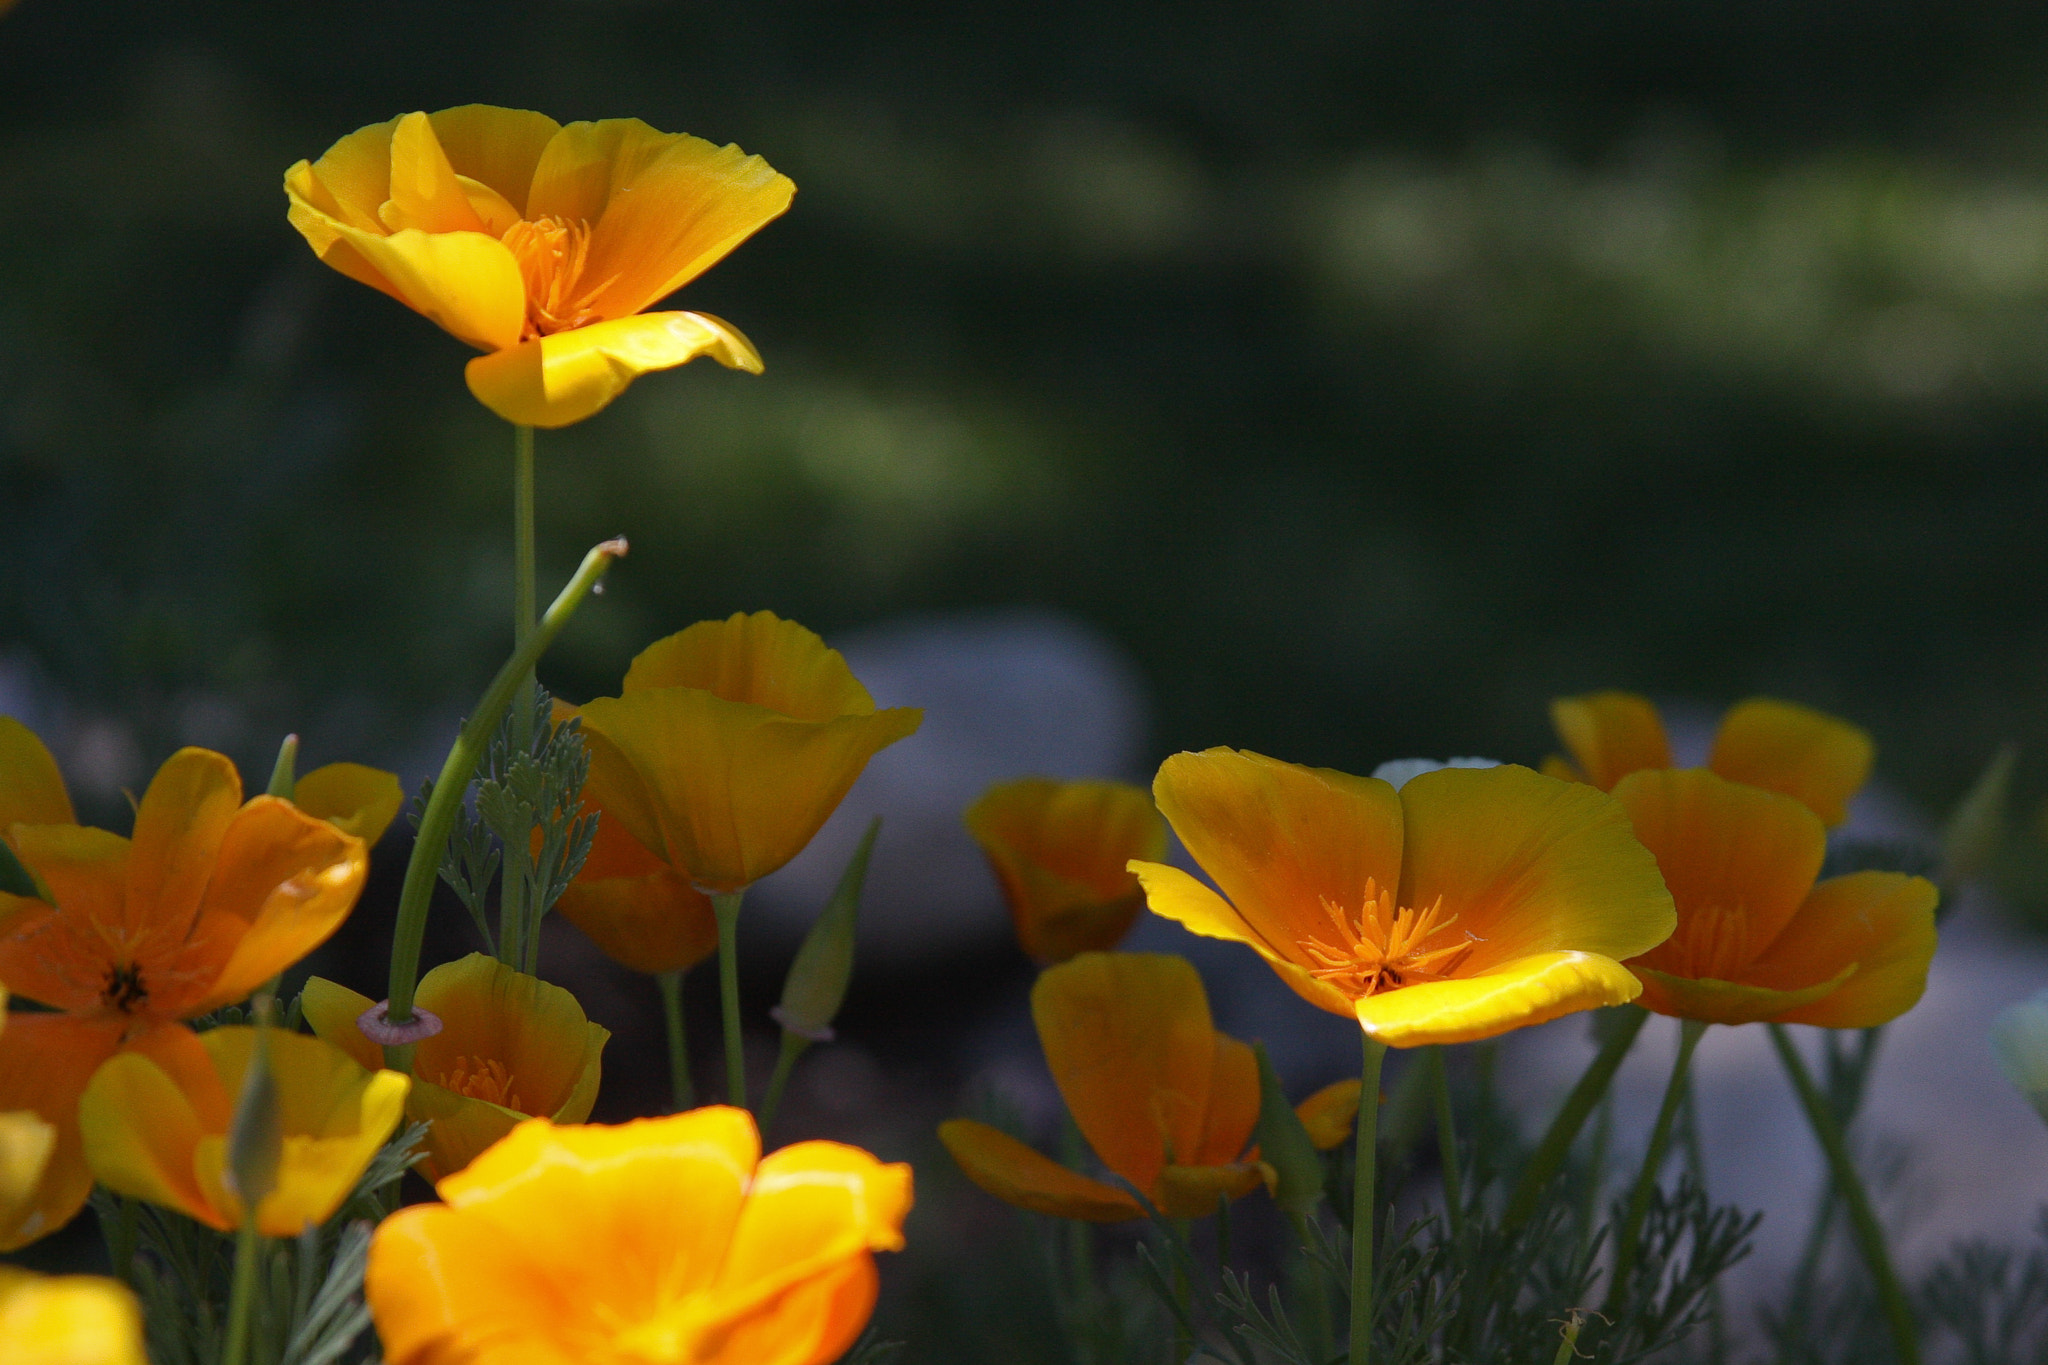 Photograph Poppies by Kerry Erington on 500px